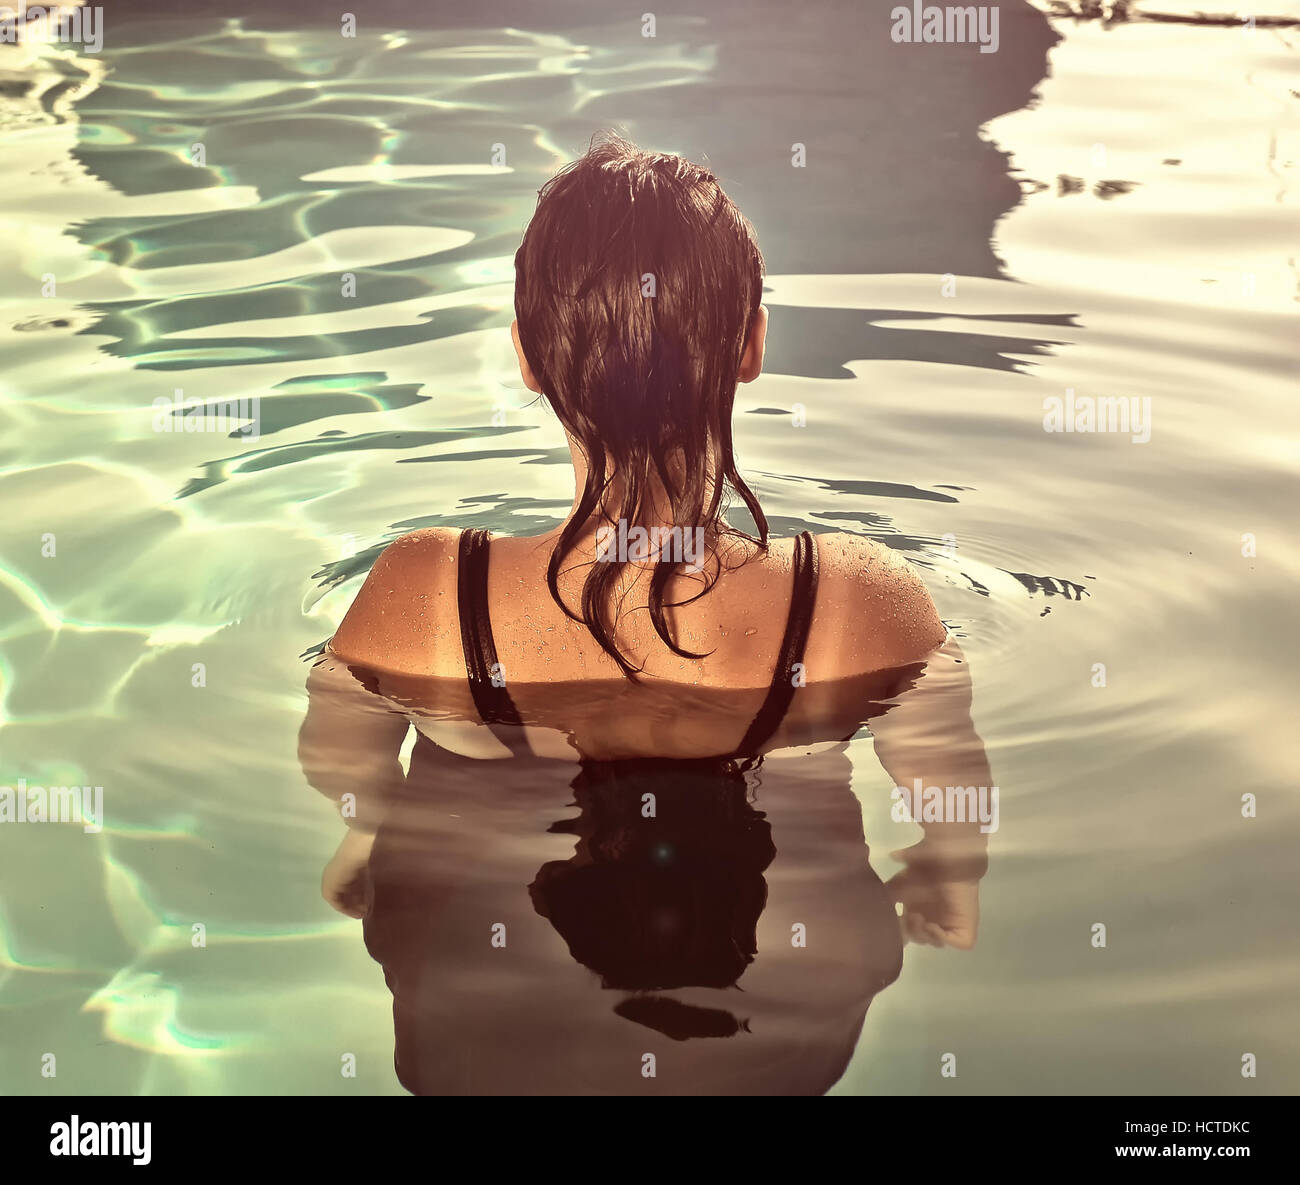 Girl swimming underwater in pool - Stock Image